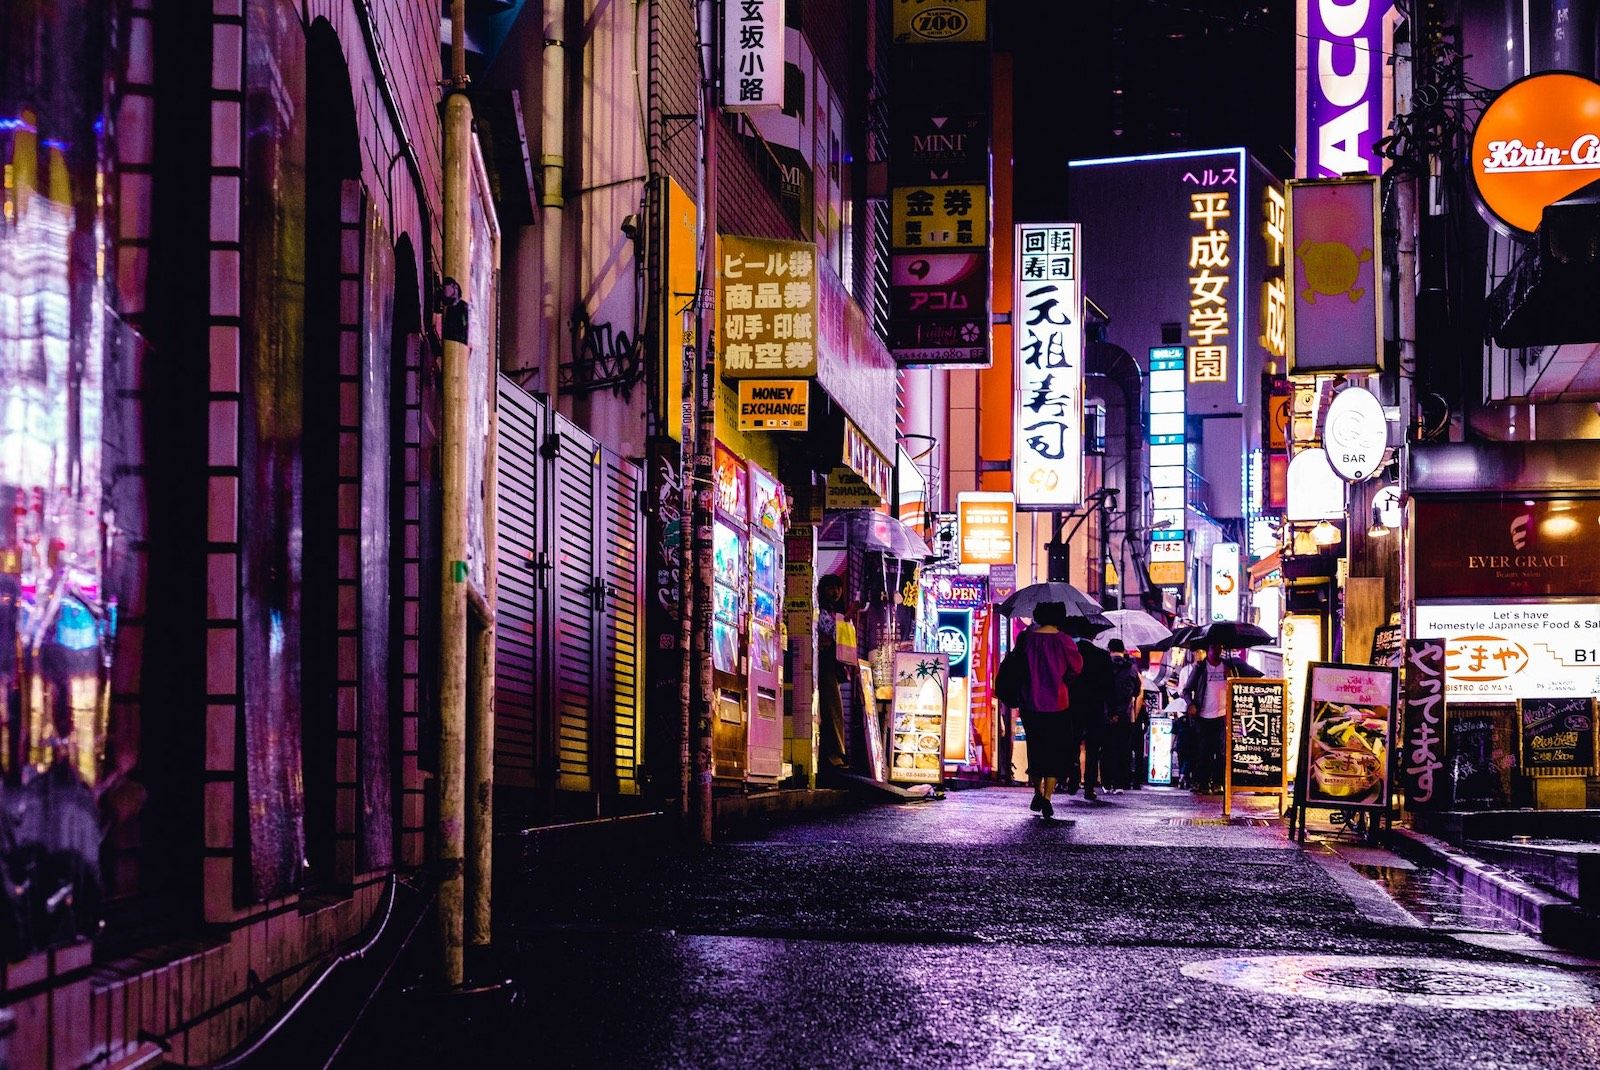 Japan, elevated: 10-city tour